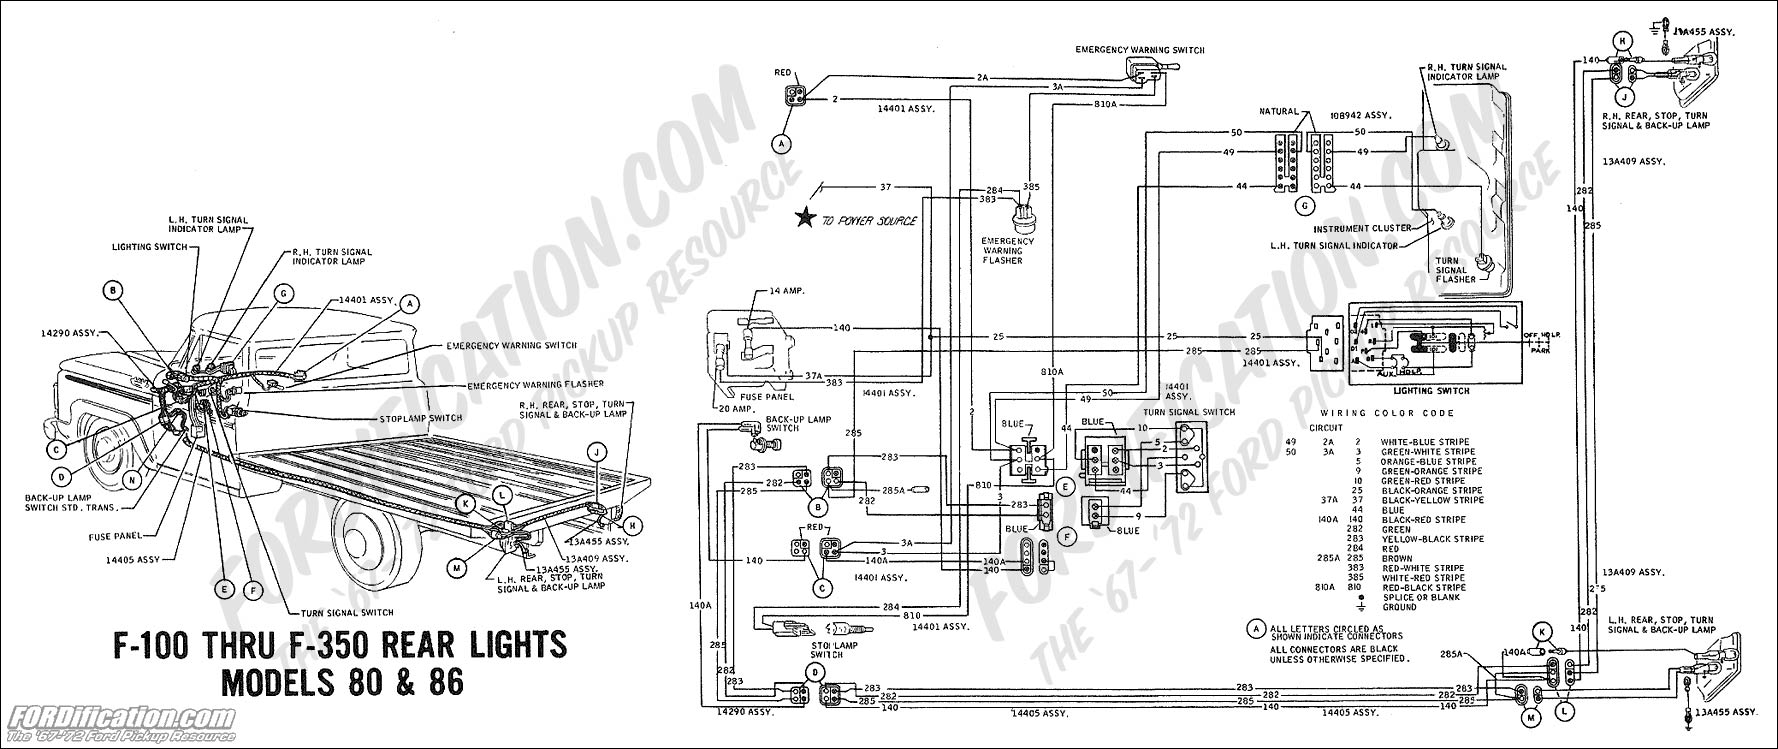 hight resolution of 1987 ford f800 wiring diagram backup wiring diagram blogs 95 ford starter solenoid wiring diagram 88 ford f700 wiring diagram